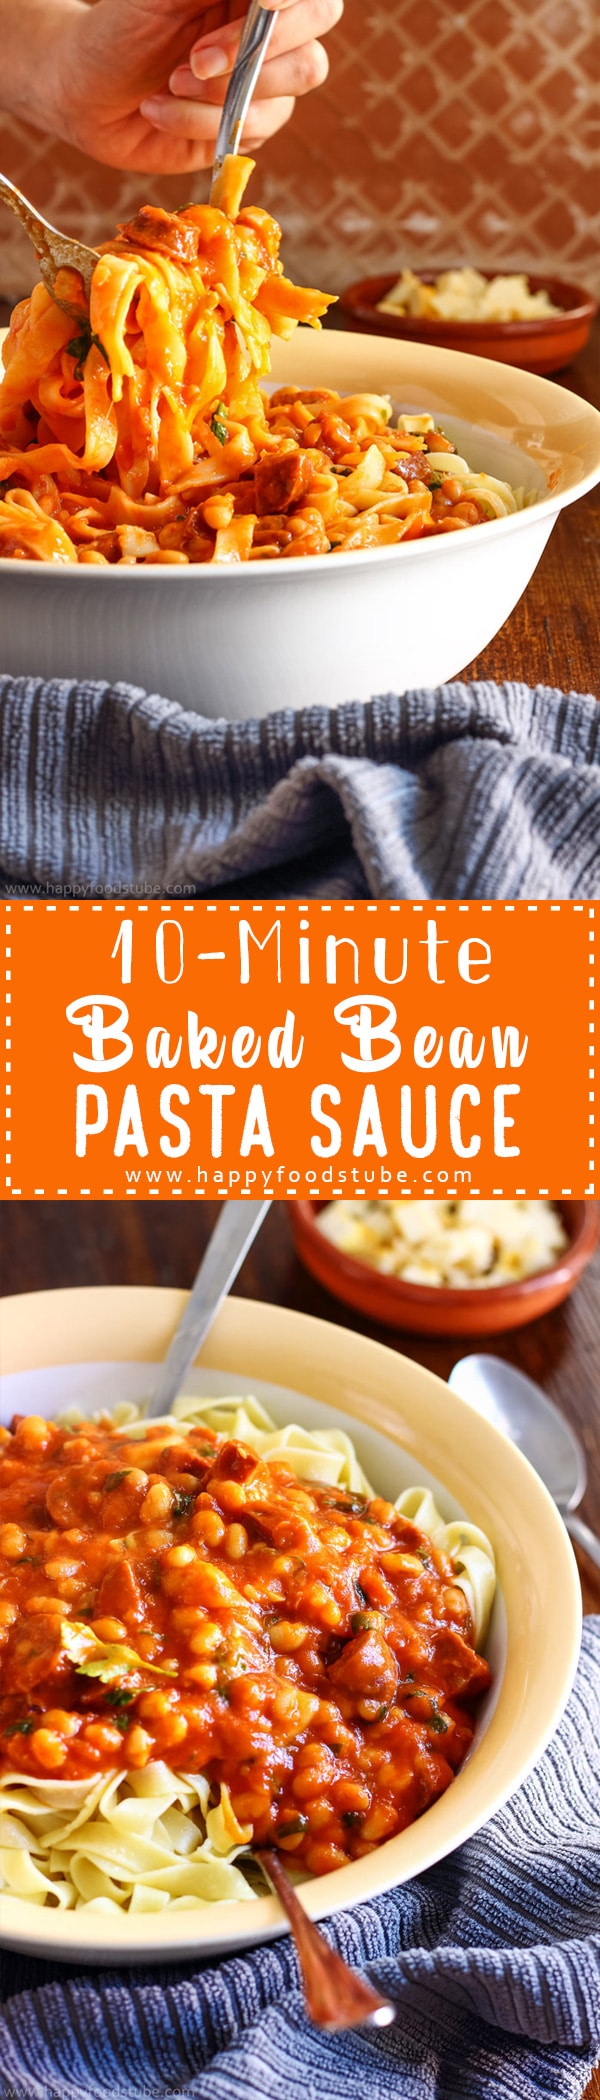 10-Minute Baked Bean Pasta Sauce for busy families. Great recipe for weeknight supper. Simple ingredients and really delicious